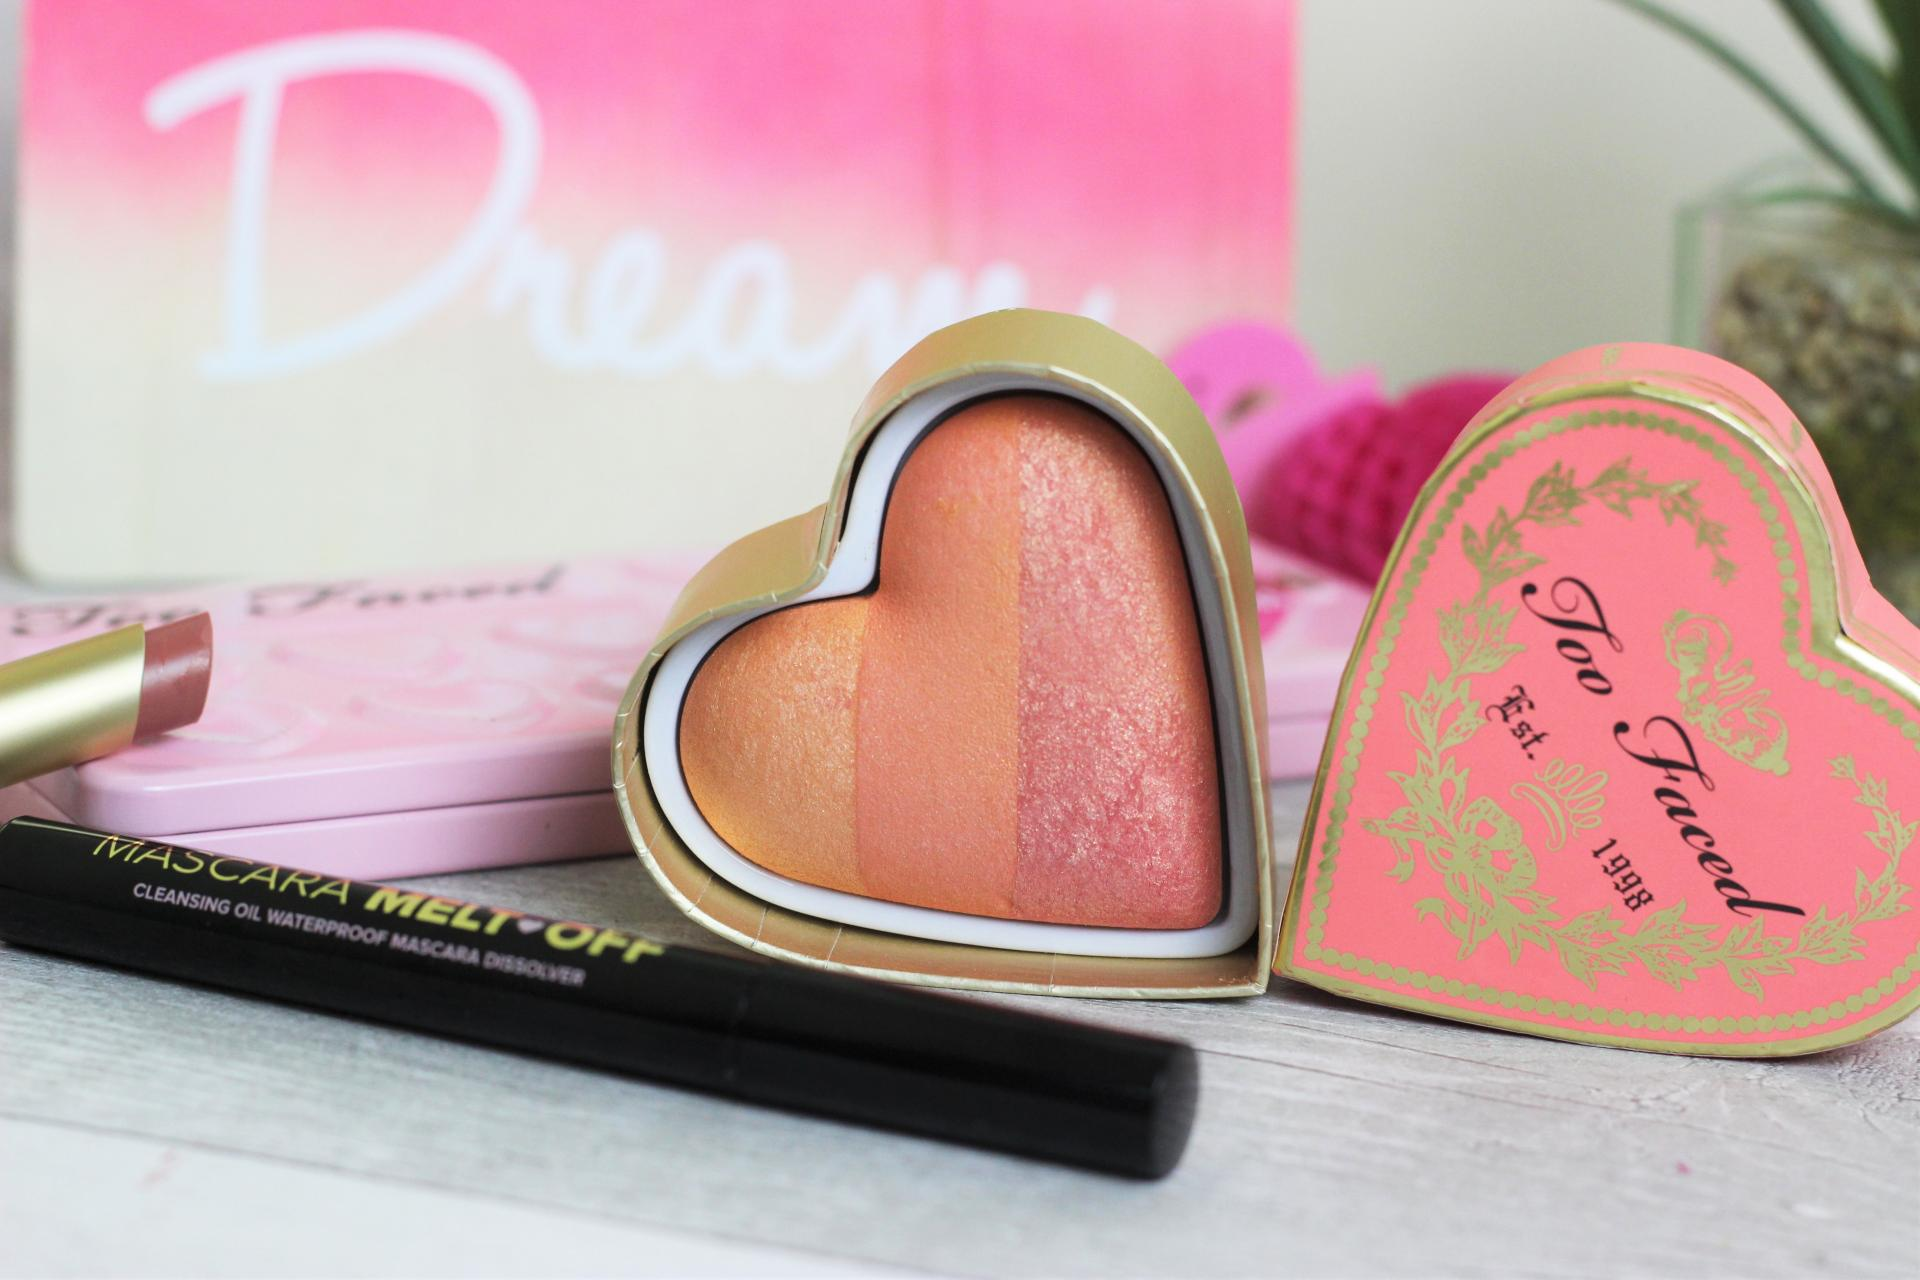 Too Faced Sweetheart and Love Flush Blushes